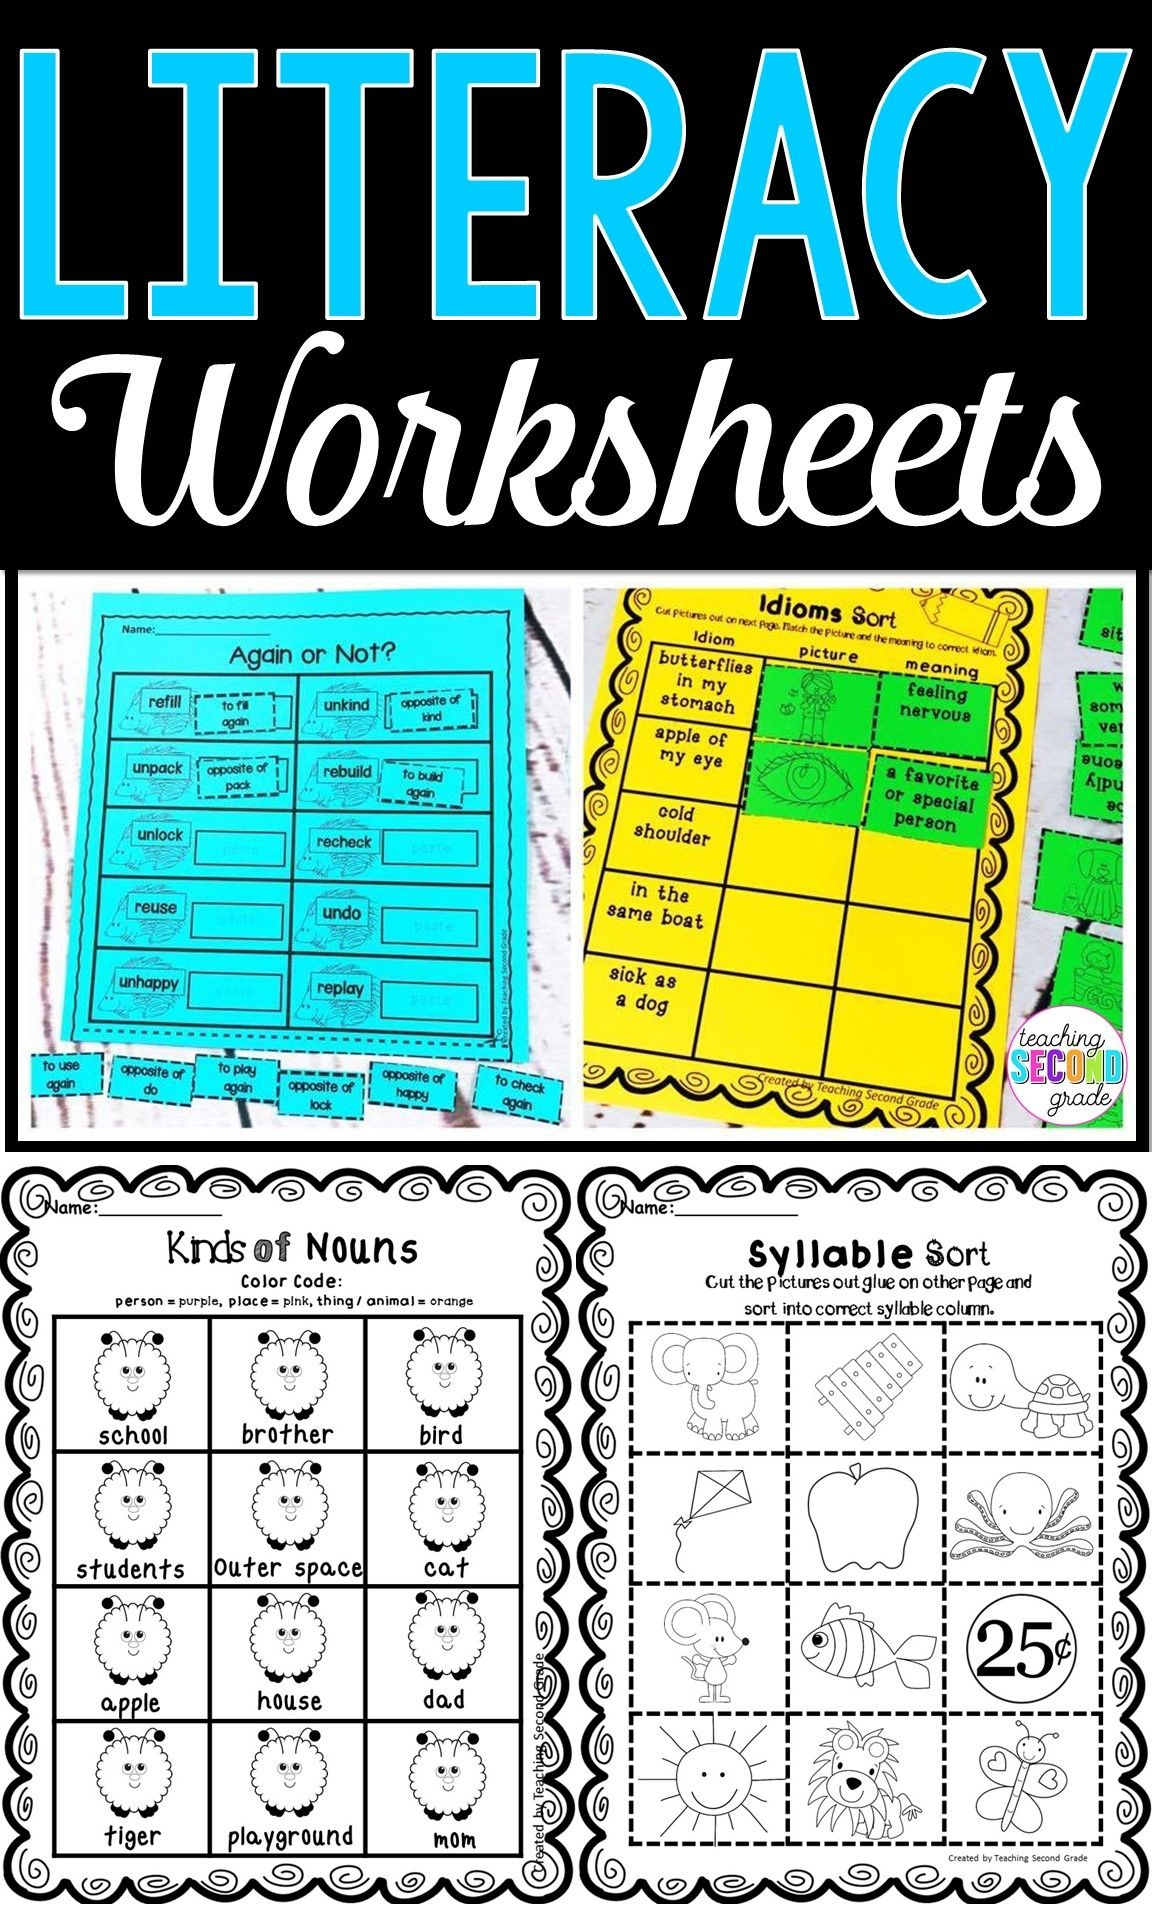 Literacy Worksheets | Literacy Activities | Literacy worksheets ...